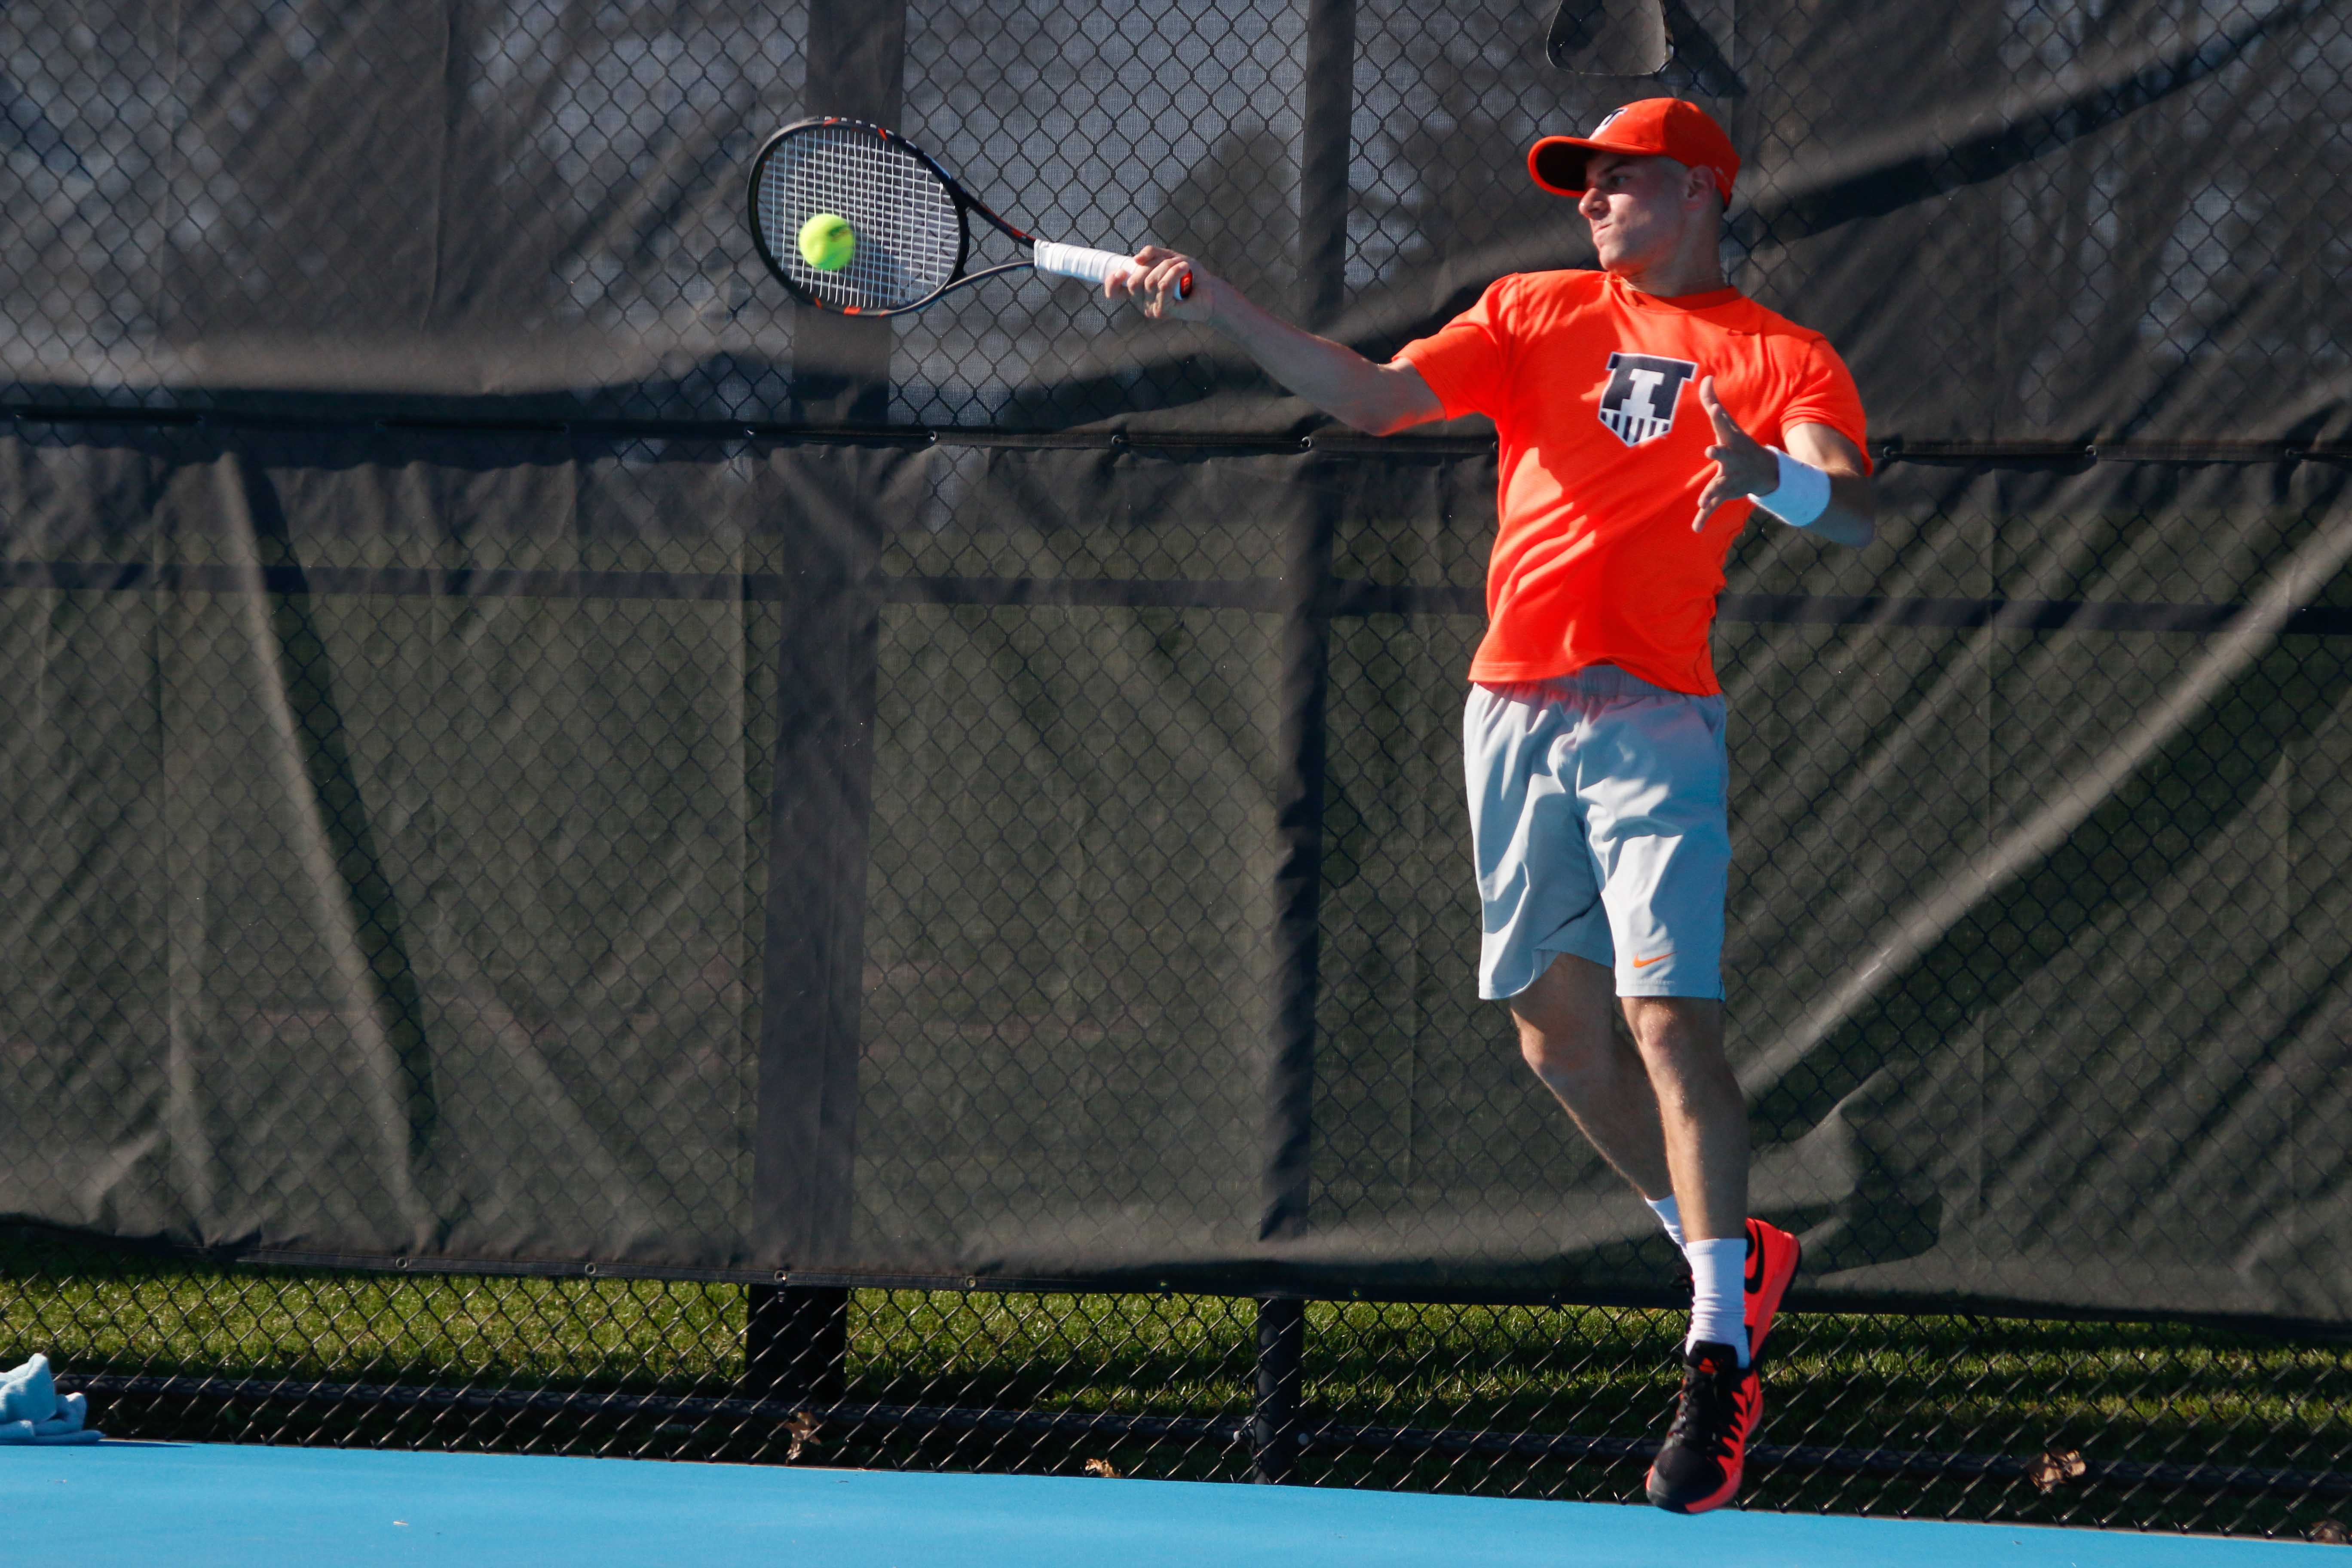 Illinois' Aron Hiltzik (So.) hits the ball back during the game against Michigan State at Atkins Tennis Center on Friday, Apr. 15, 2016. The Illini won 4-0.